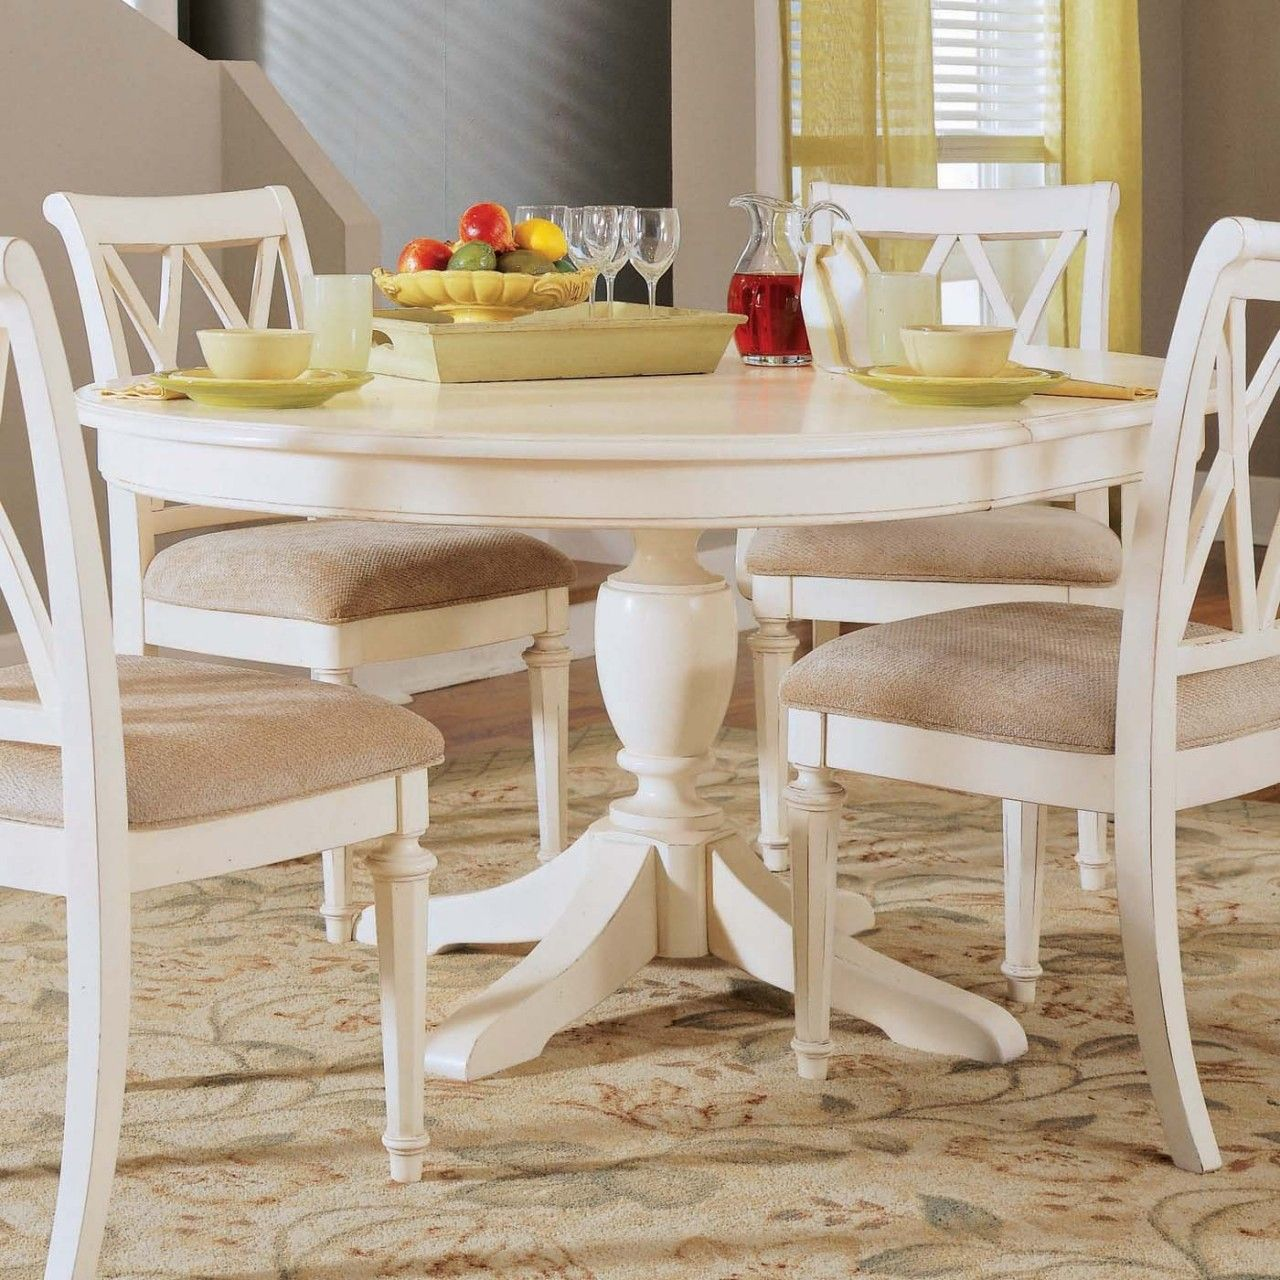 American Drew Camden Round Dining Table In White White Round Dining Table Kitchen Table Settings Round Pedestal Dining Table